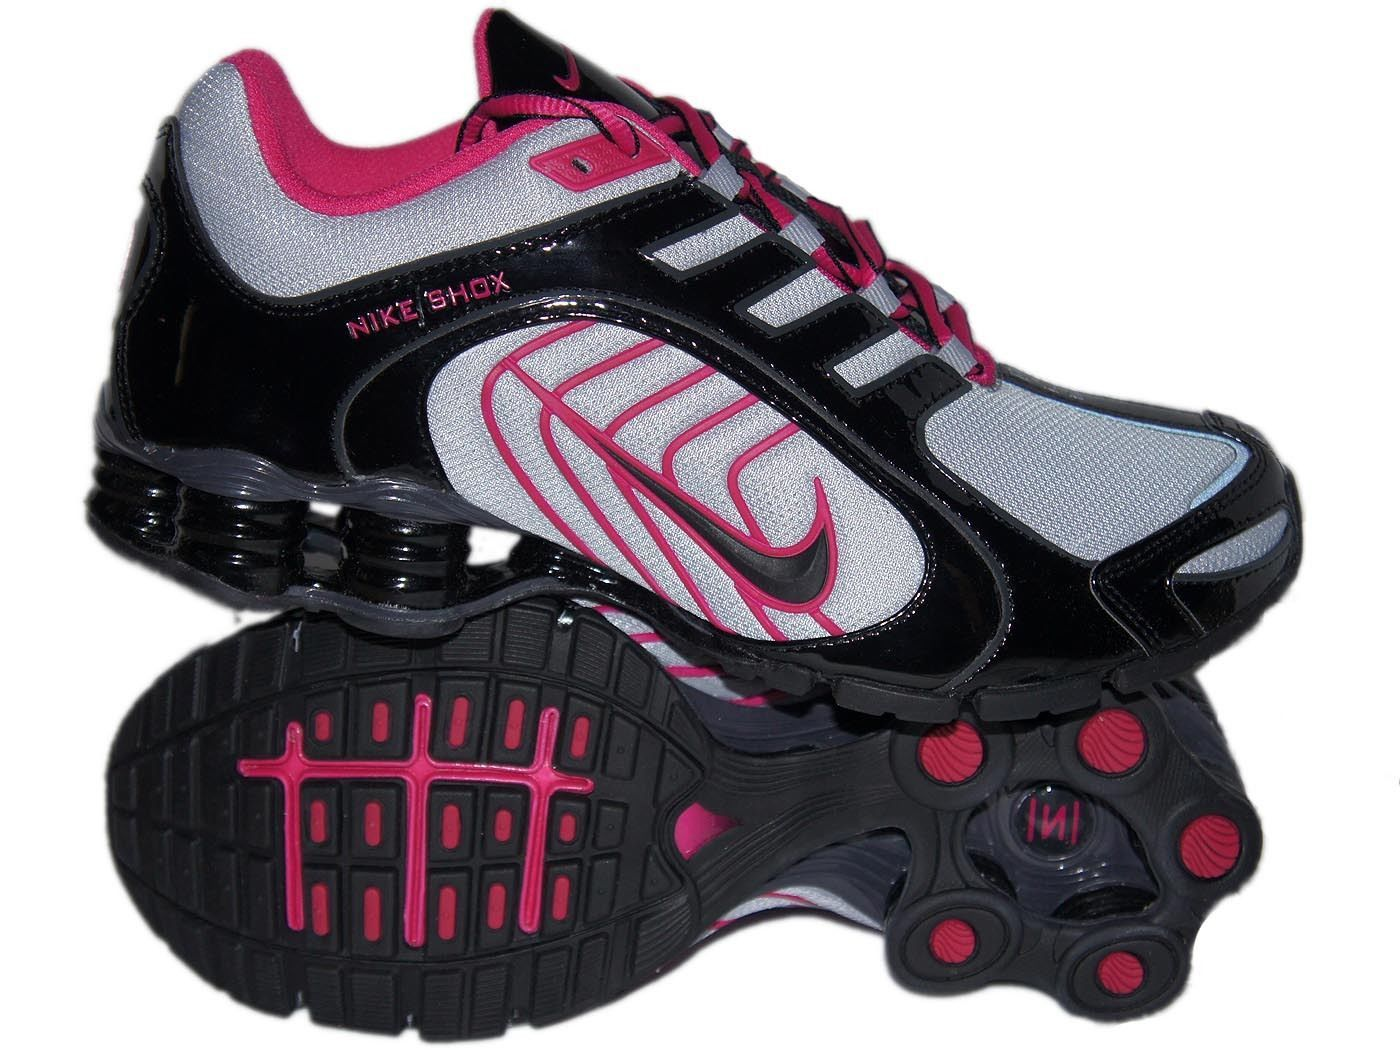 WOMEN'S NIKE SHOX NAVINA SIZE 7.5 - GREY BLACK FIREBERRY RUNNING